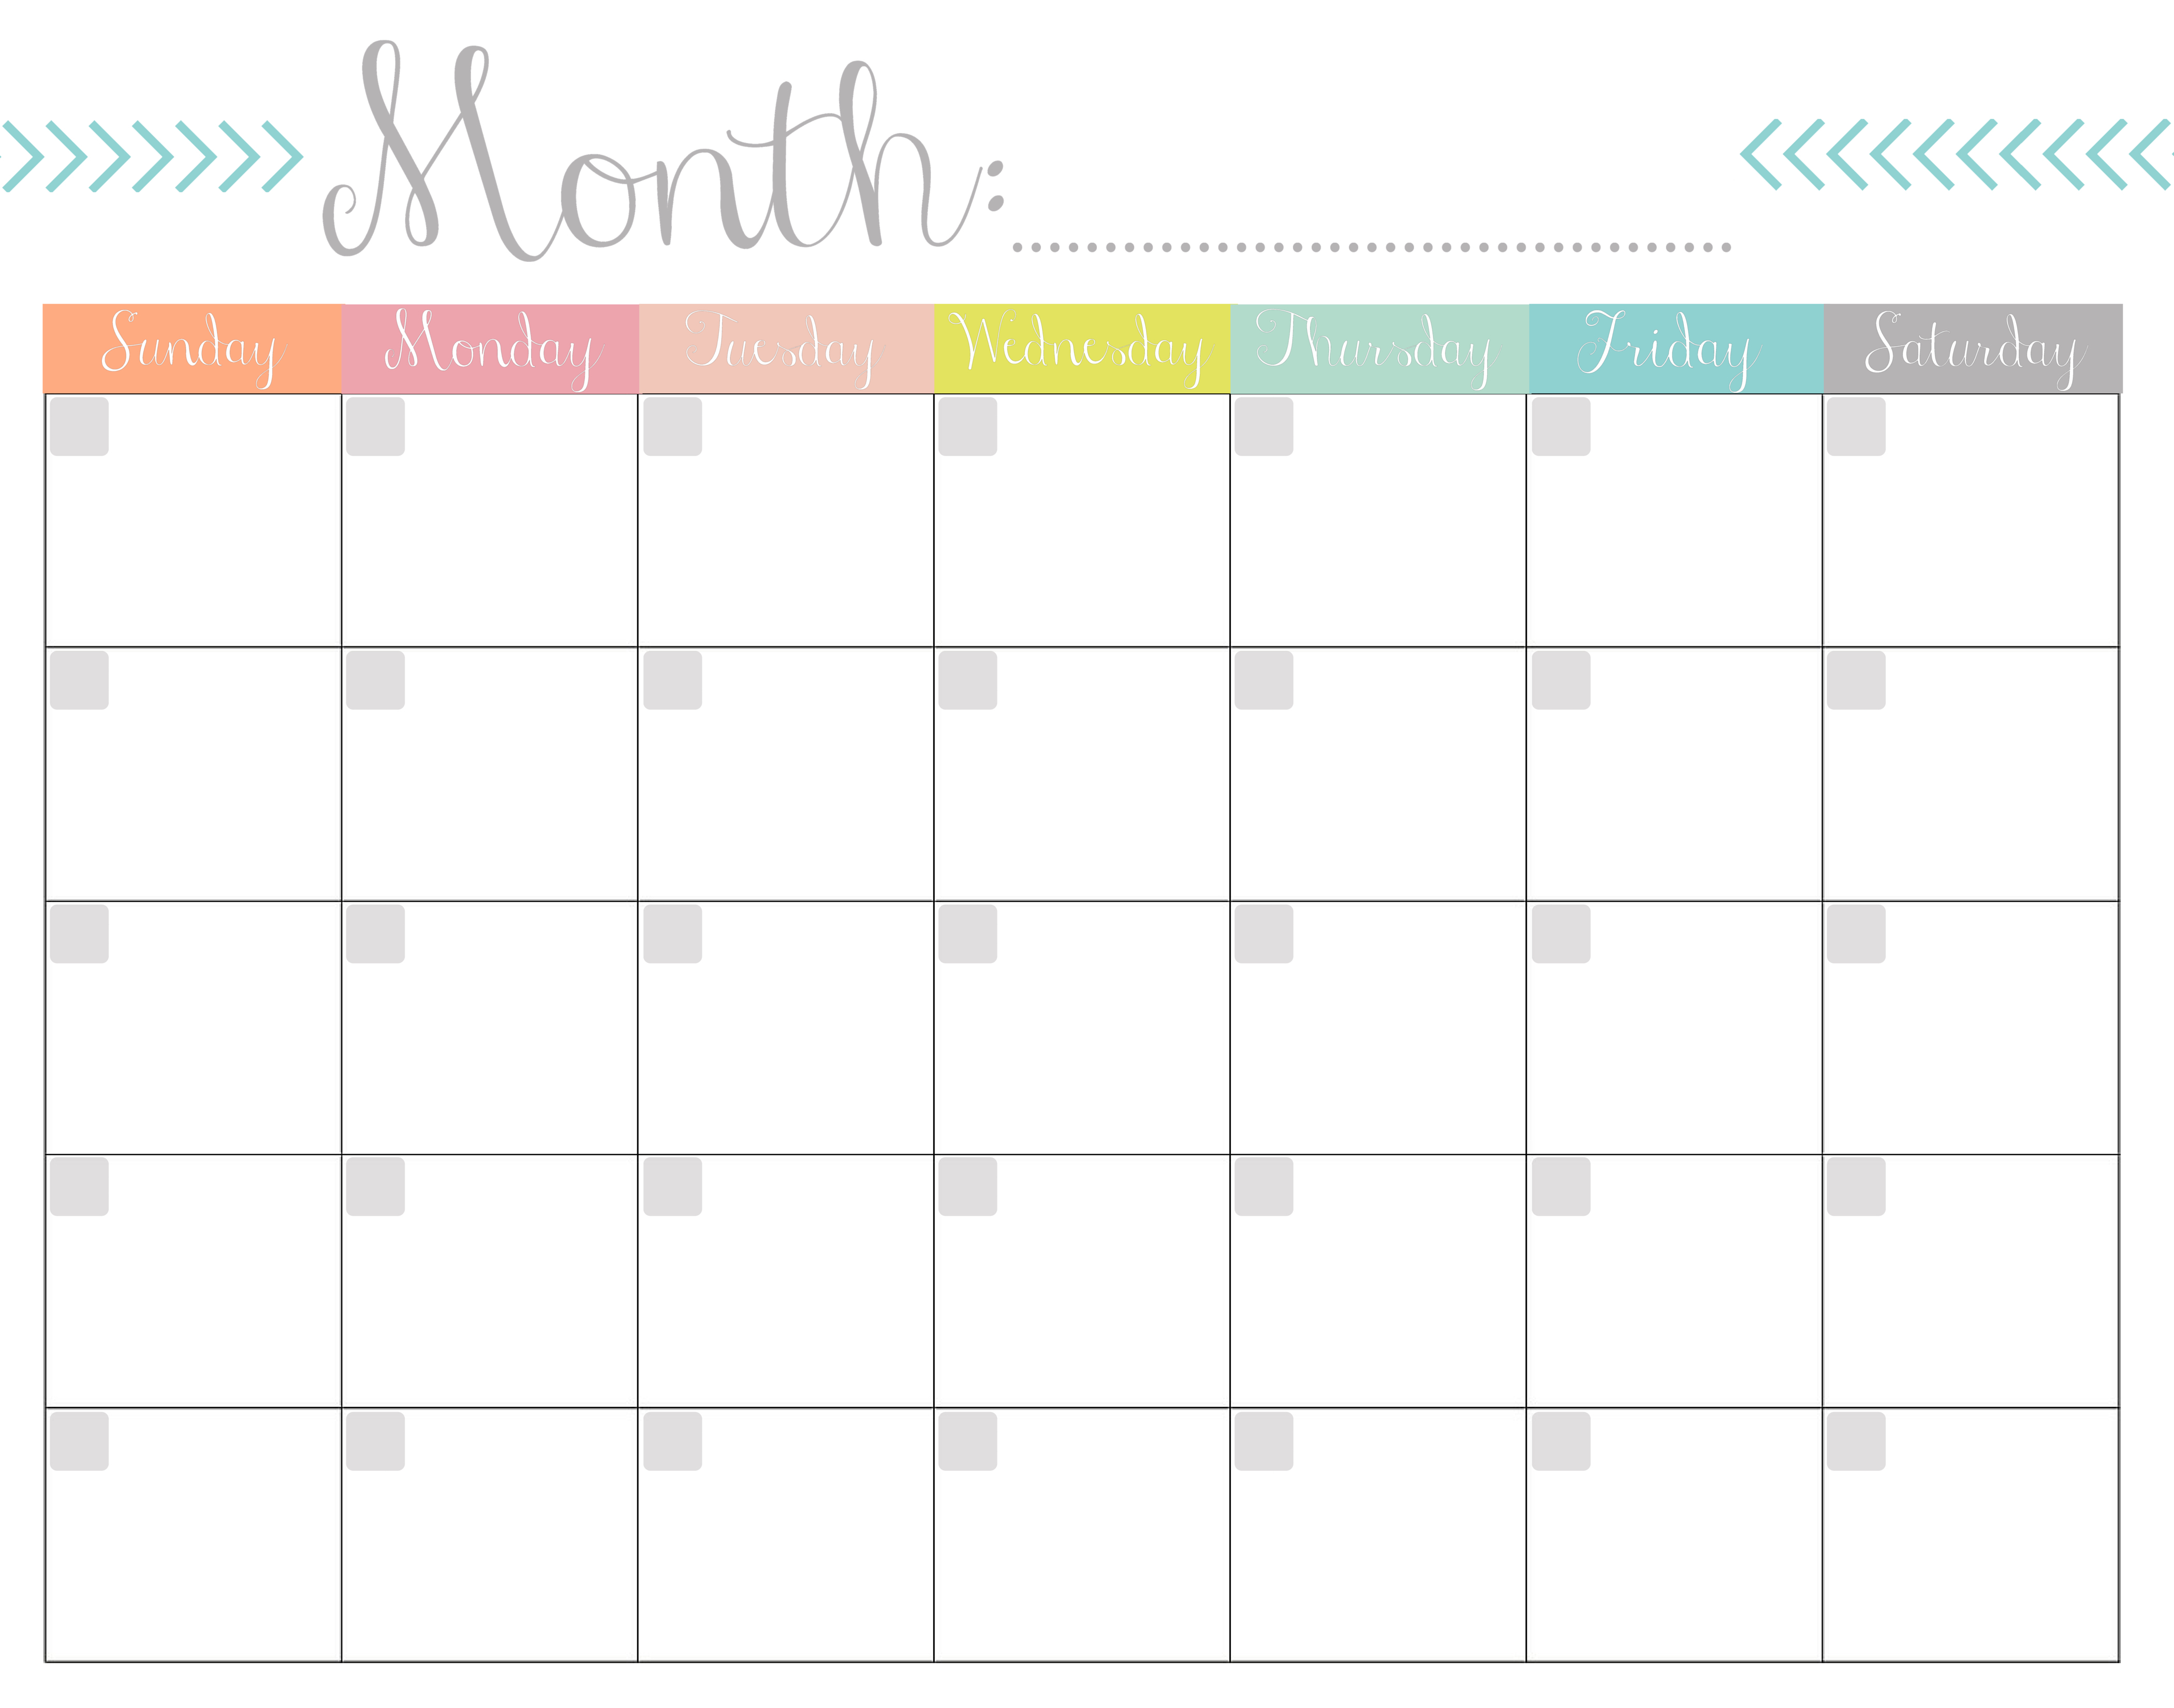 Printable Monthly Calender | Room Surf